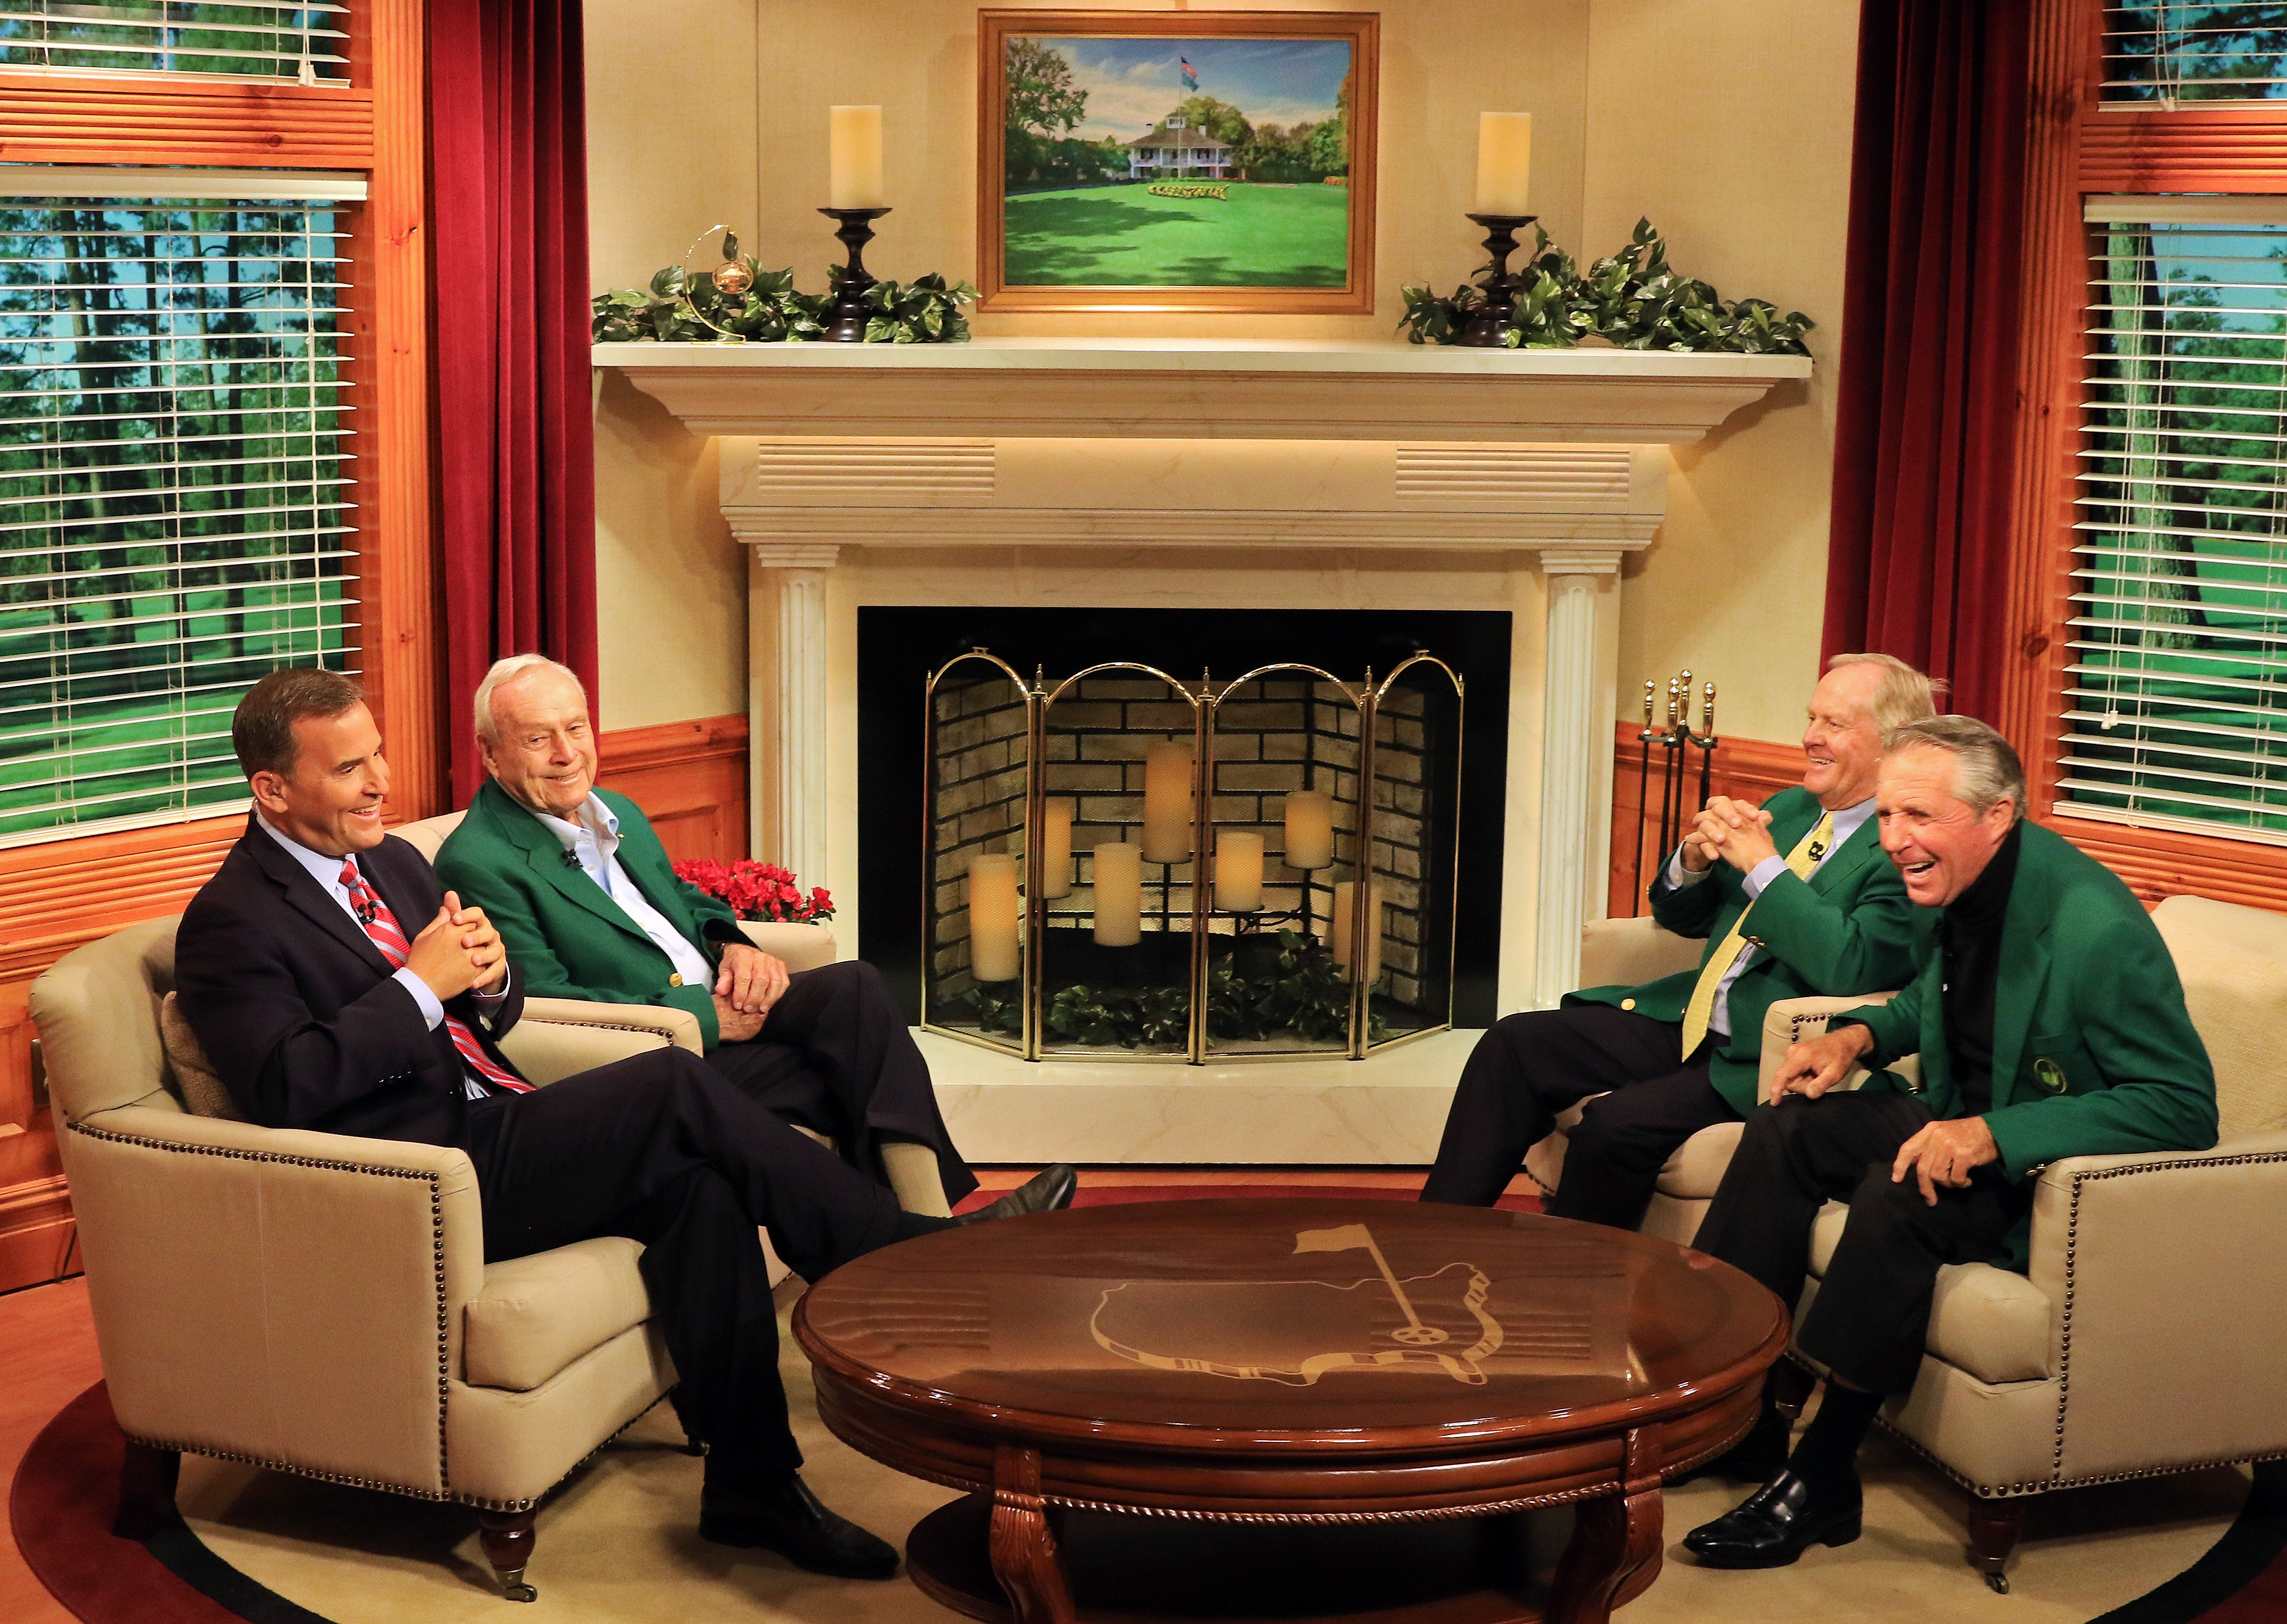 Steve Sands chats with  Masters champions Arnold Palmer, Jack Nicklaus and Gary Player of South Africa on the Golf Channel set prior to the start of the 2015 Masters Tournament at Augusta National Golf Club on April 8, 2015 in Augusta, Ga.